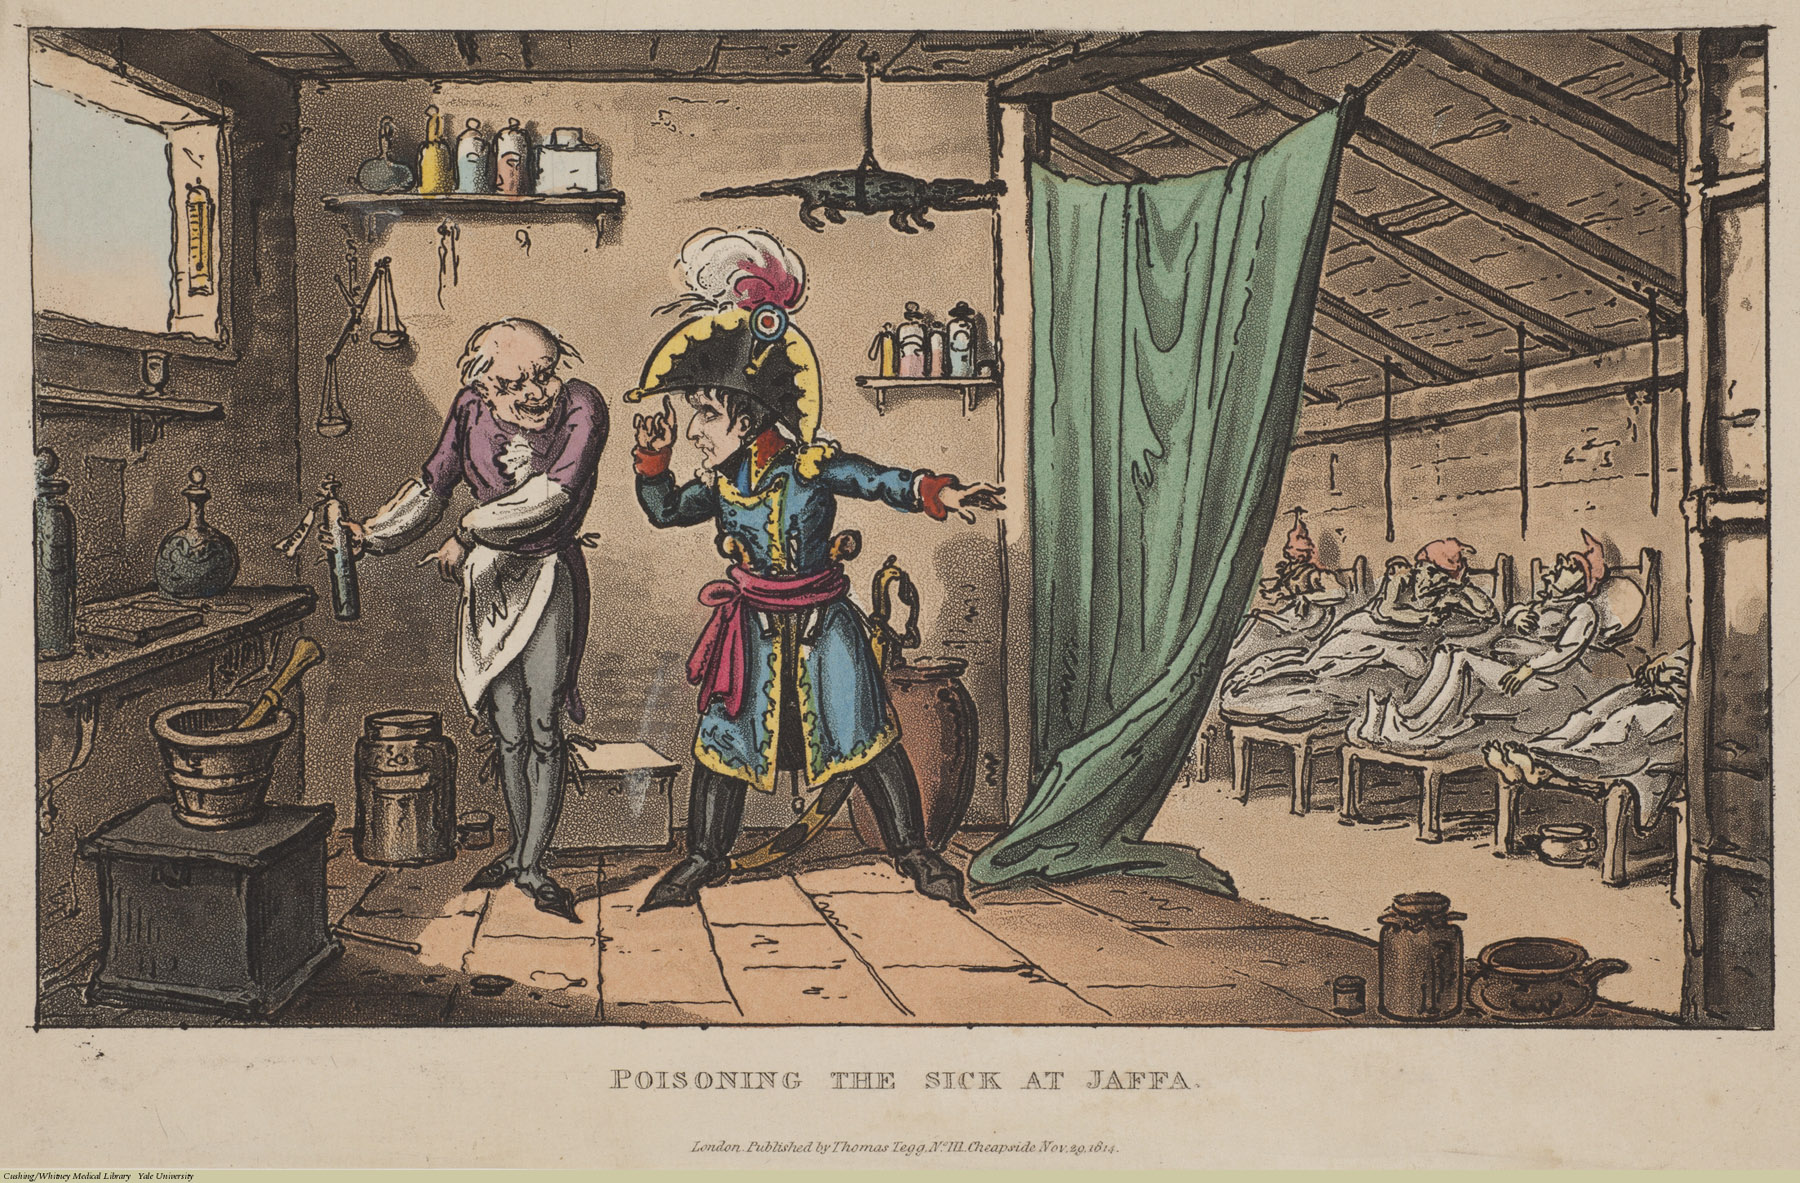 Poisoning the Sick at Jaffa. George Cruikshank, Aquatint coloured, 1814. Subject: Napoleon, Jaffa, Poison, Hospitals, Military Hospitals.